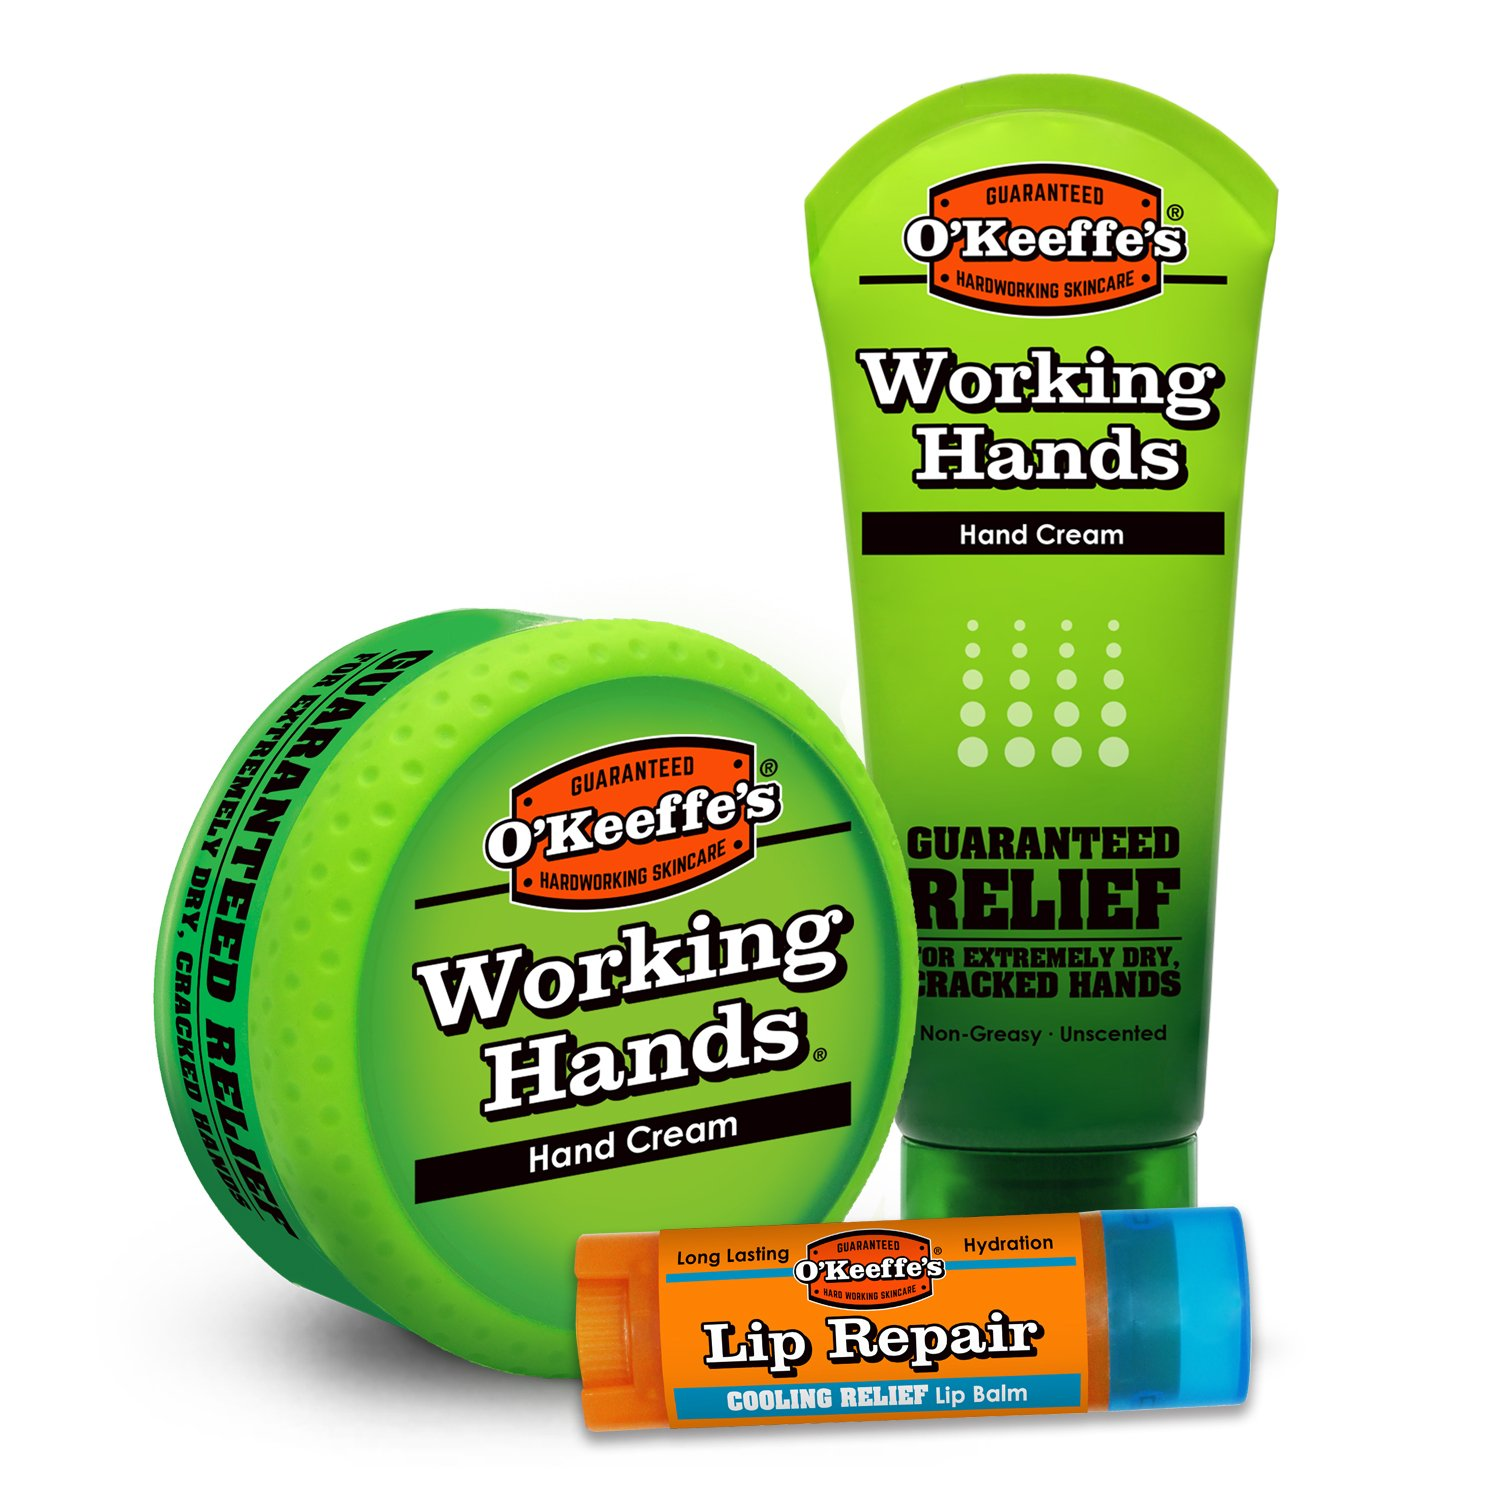 O'Keeffe's Working Hands & Lip Repair Variety Pack by O'Keeffe's